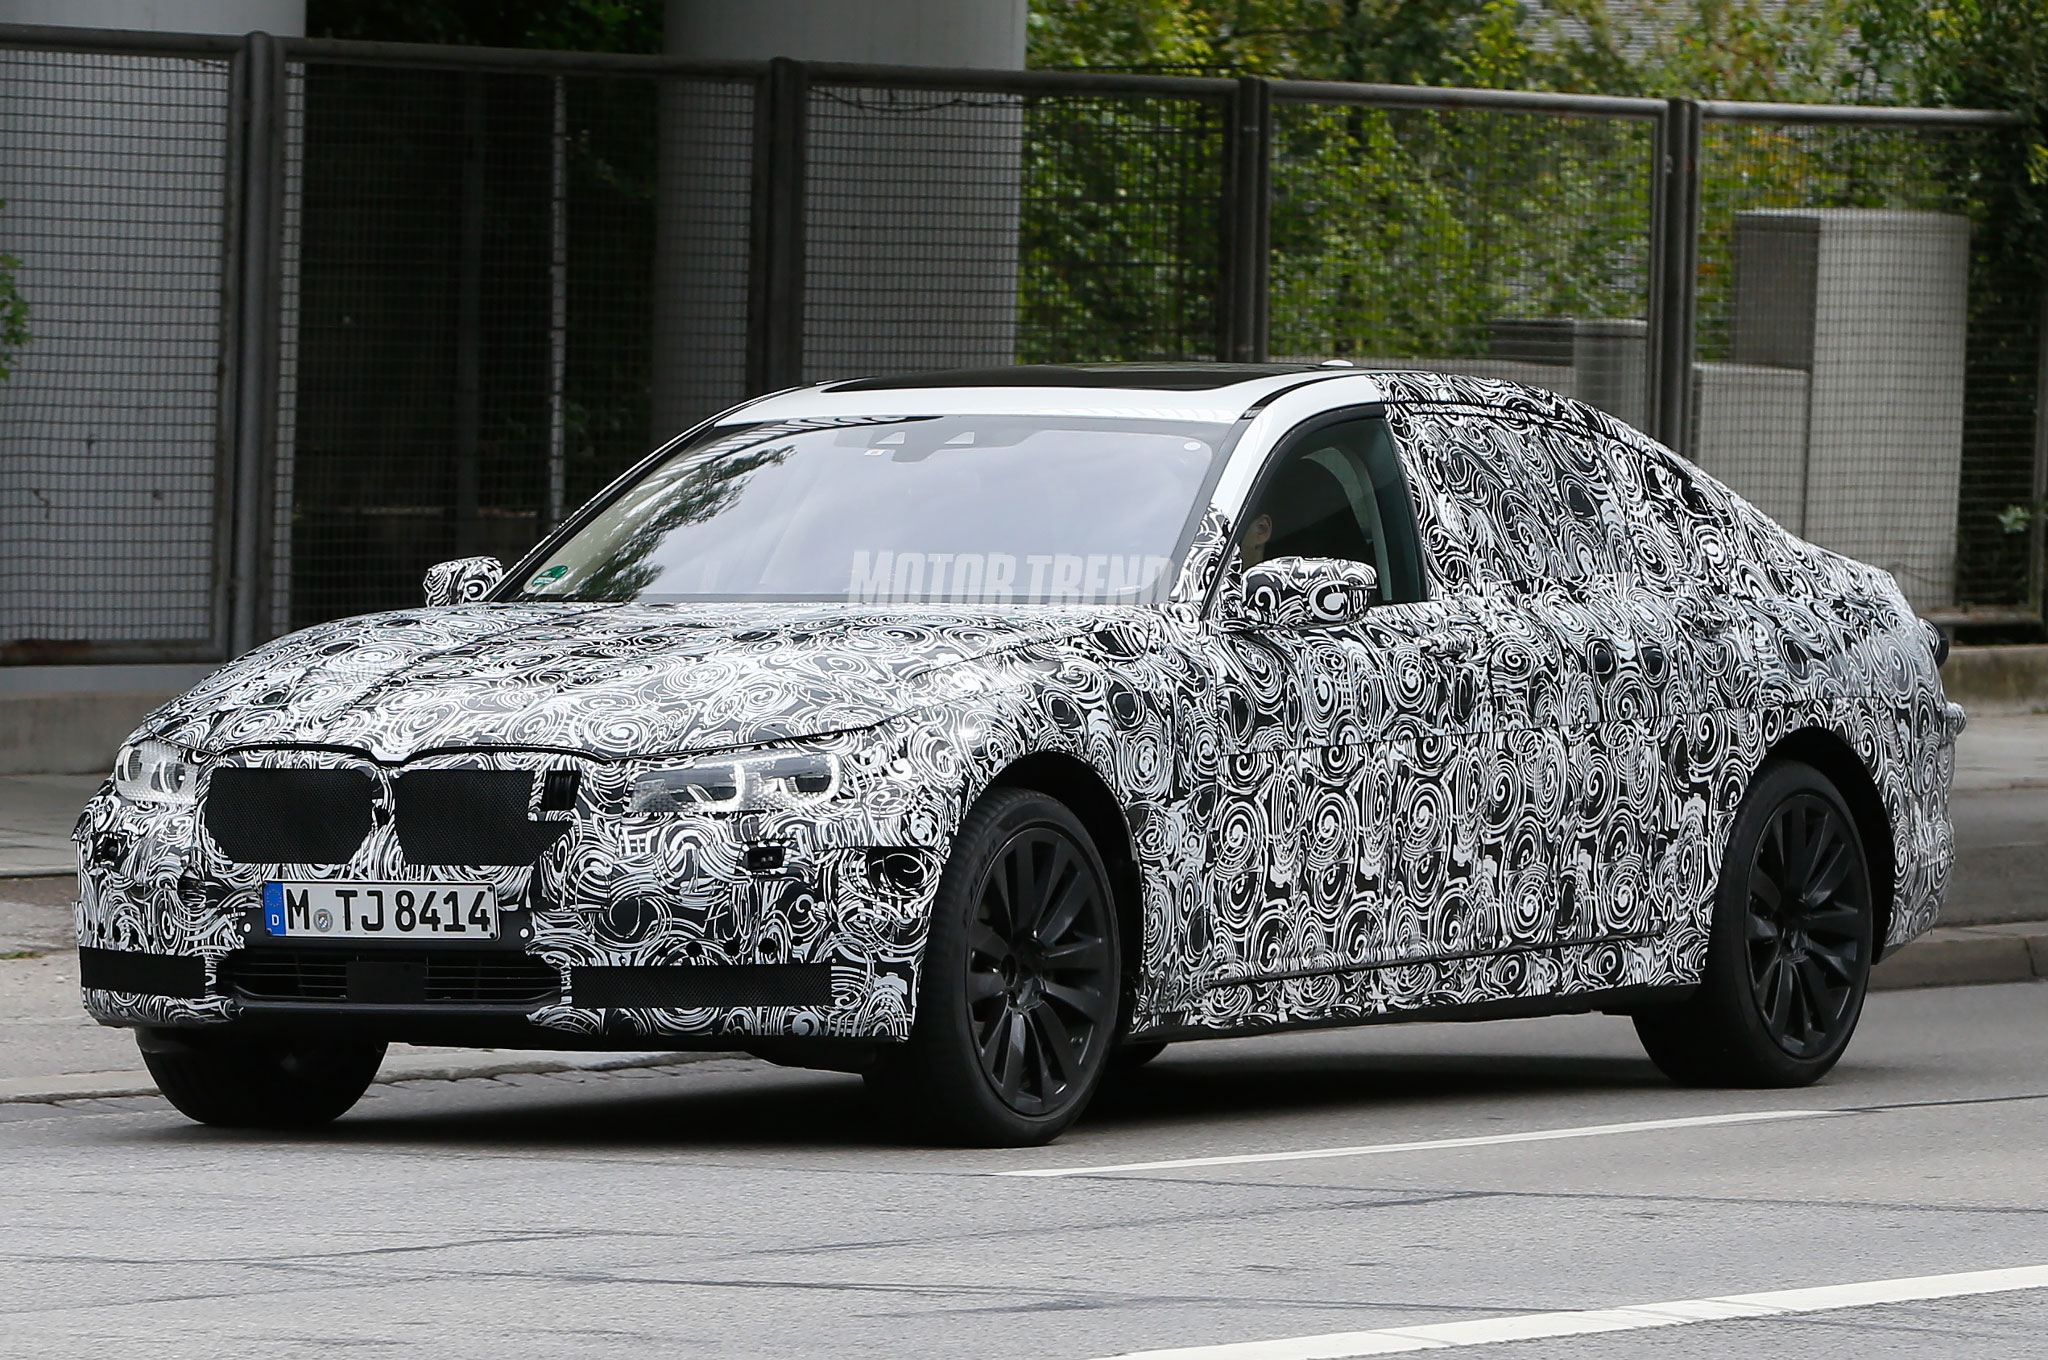 Spied! BMW 7 Series Mule's Angel Eyes are Looking at the S-Class